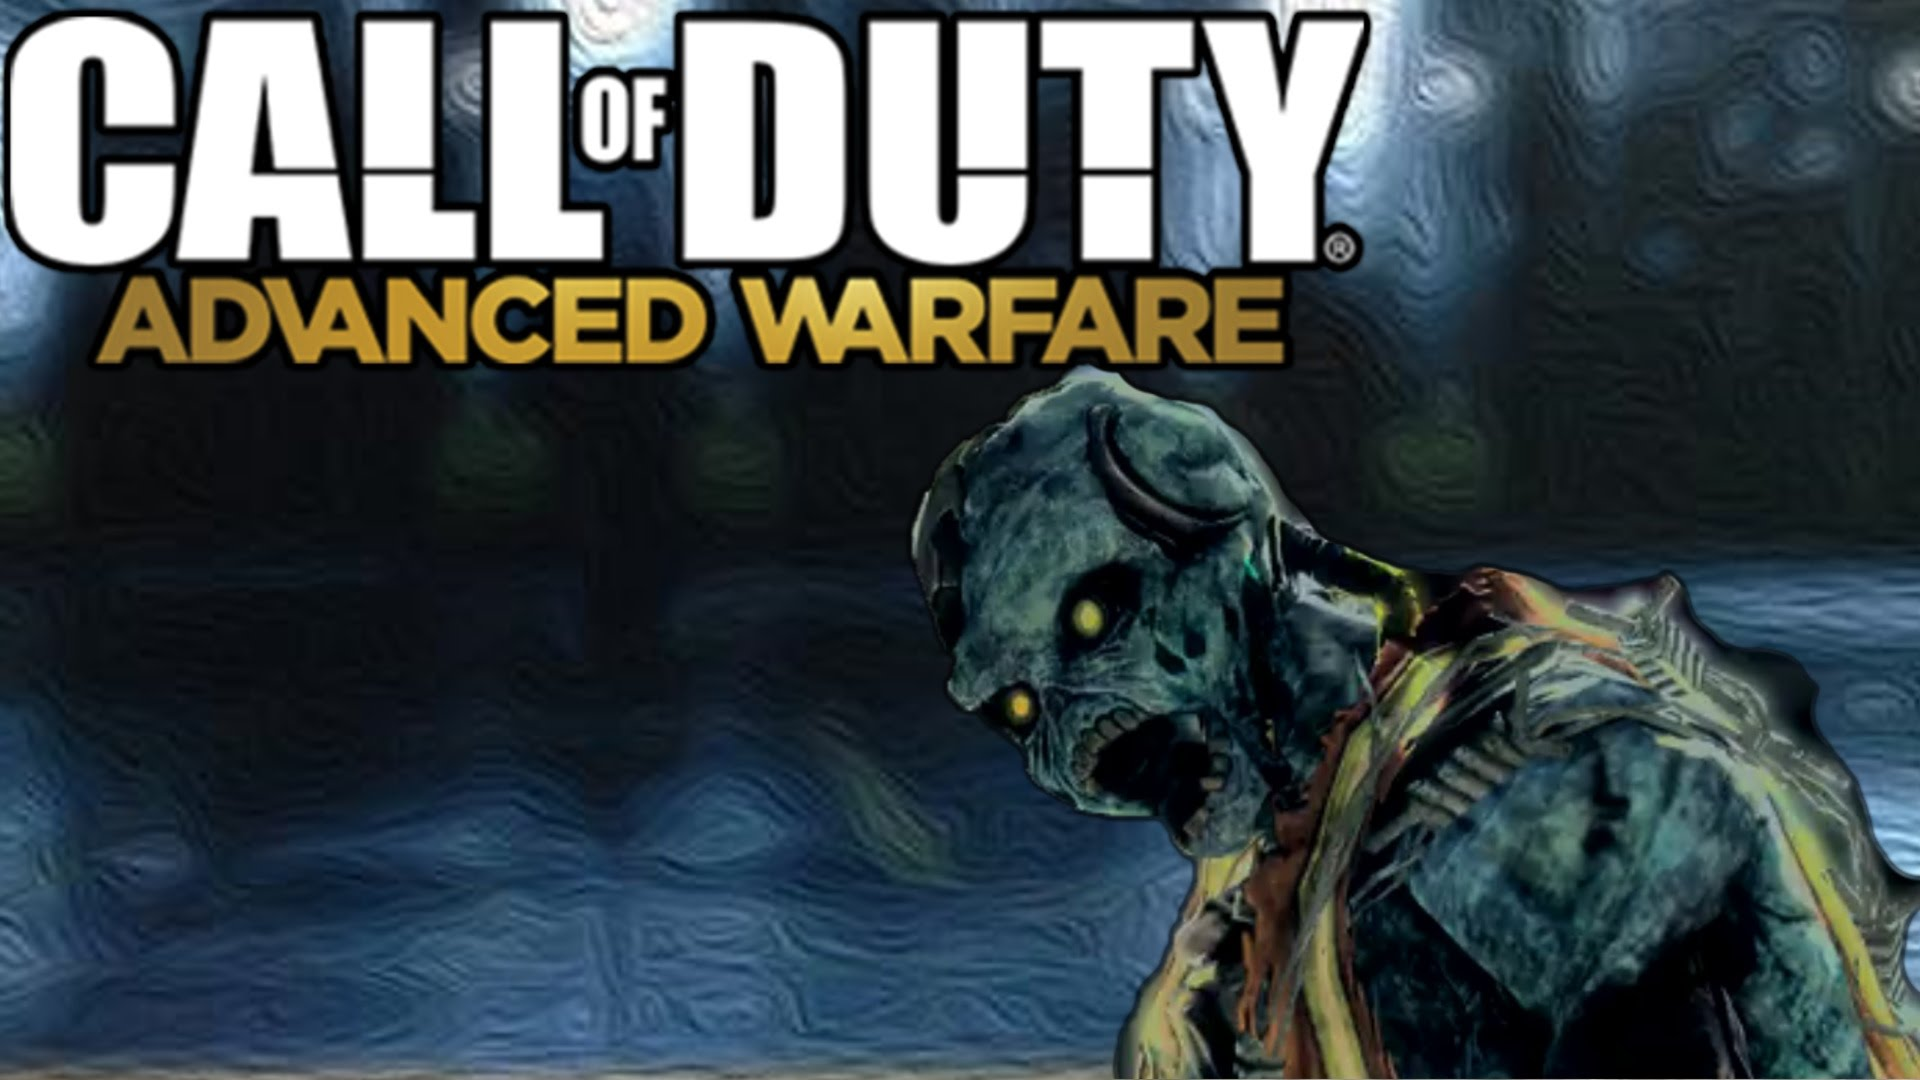 download NEW CO OP MODE TEASER Cyborg Zombies Call of Duty AW 1920x1080